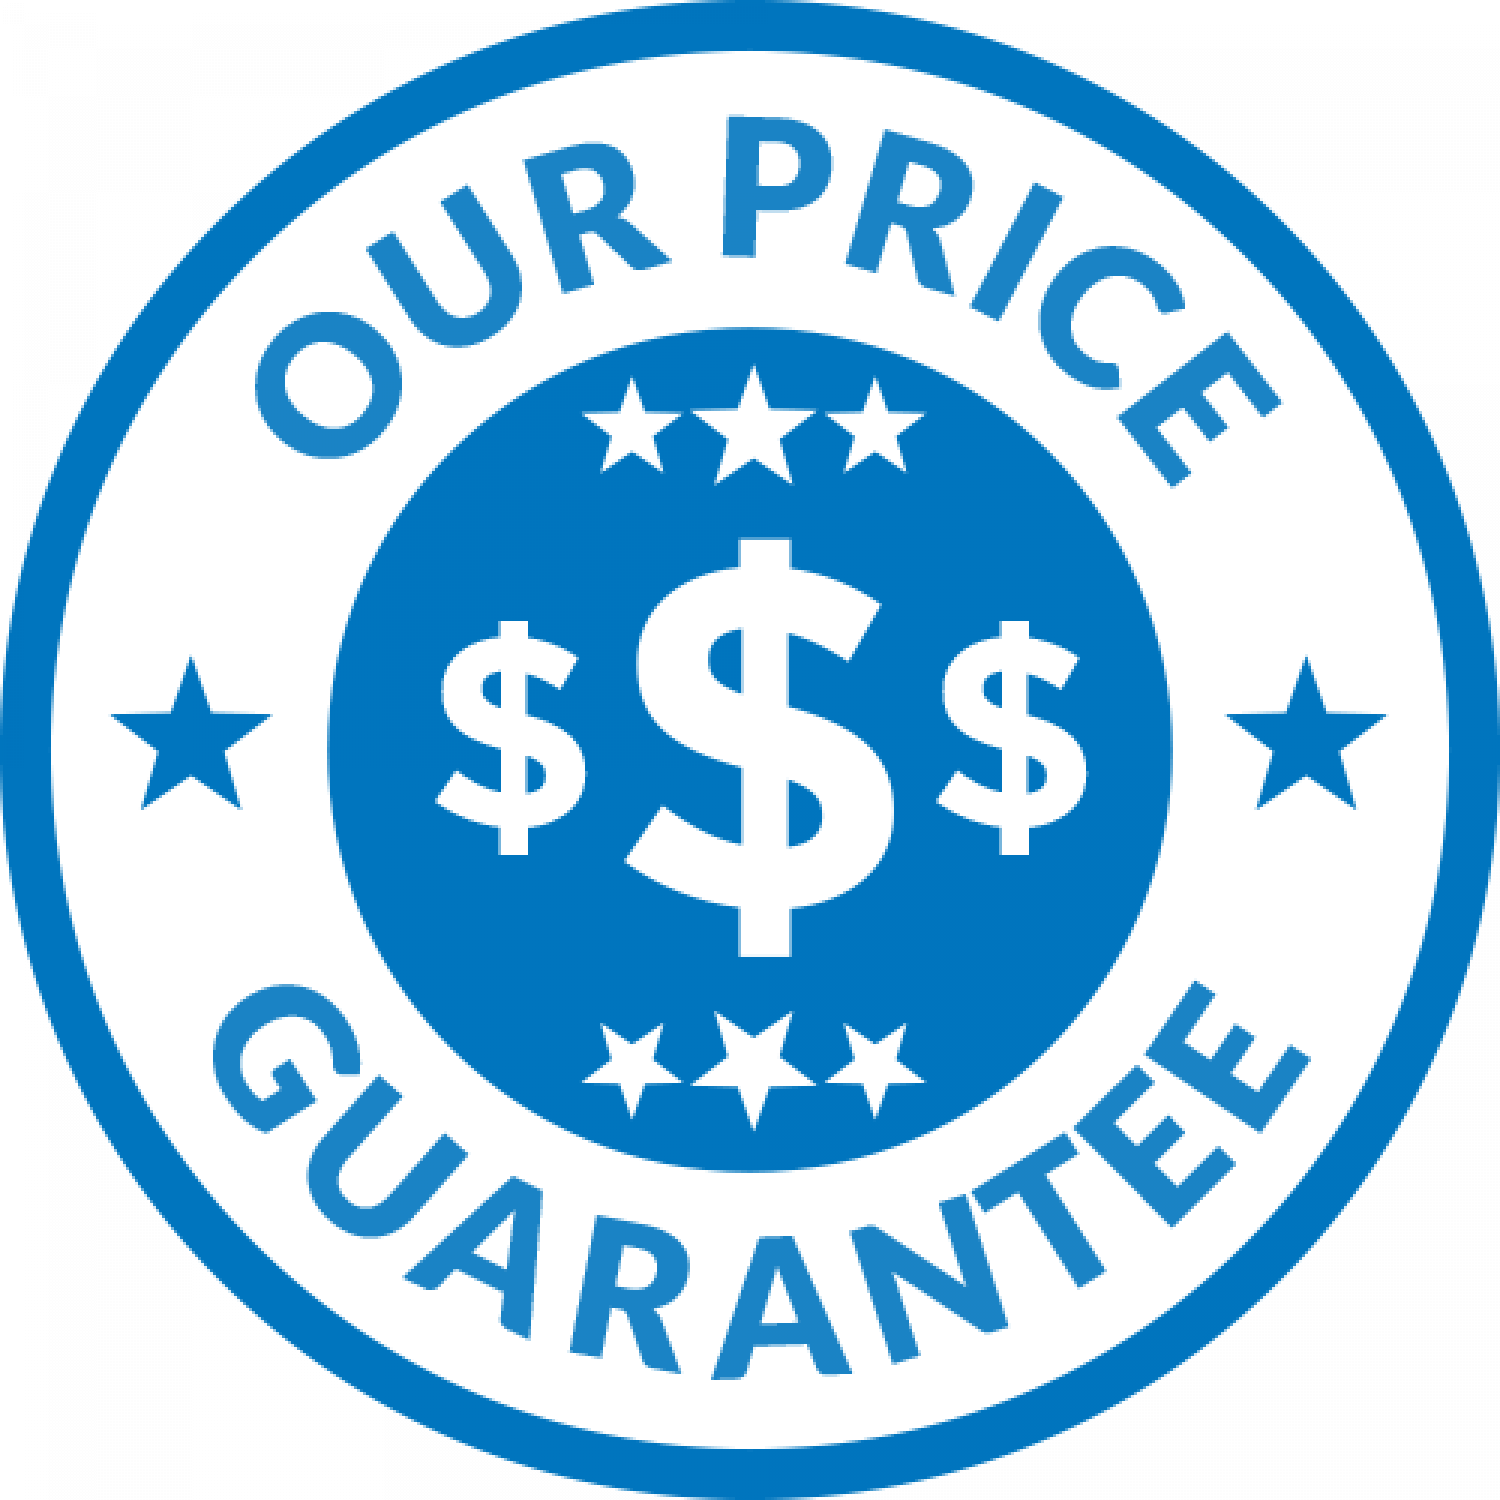 Our-price-guarantee